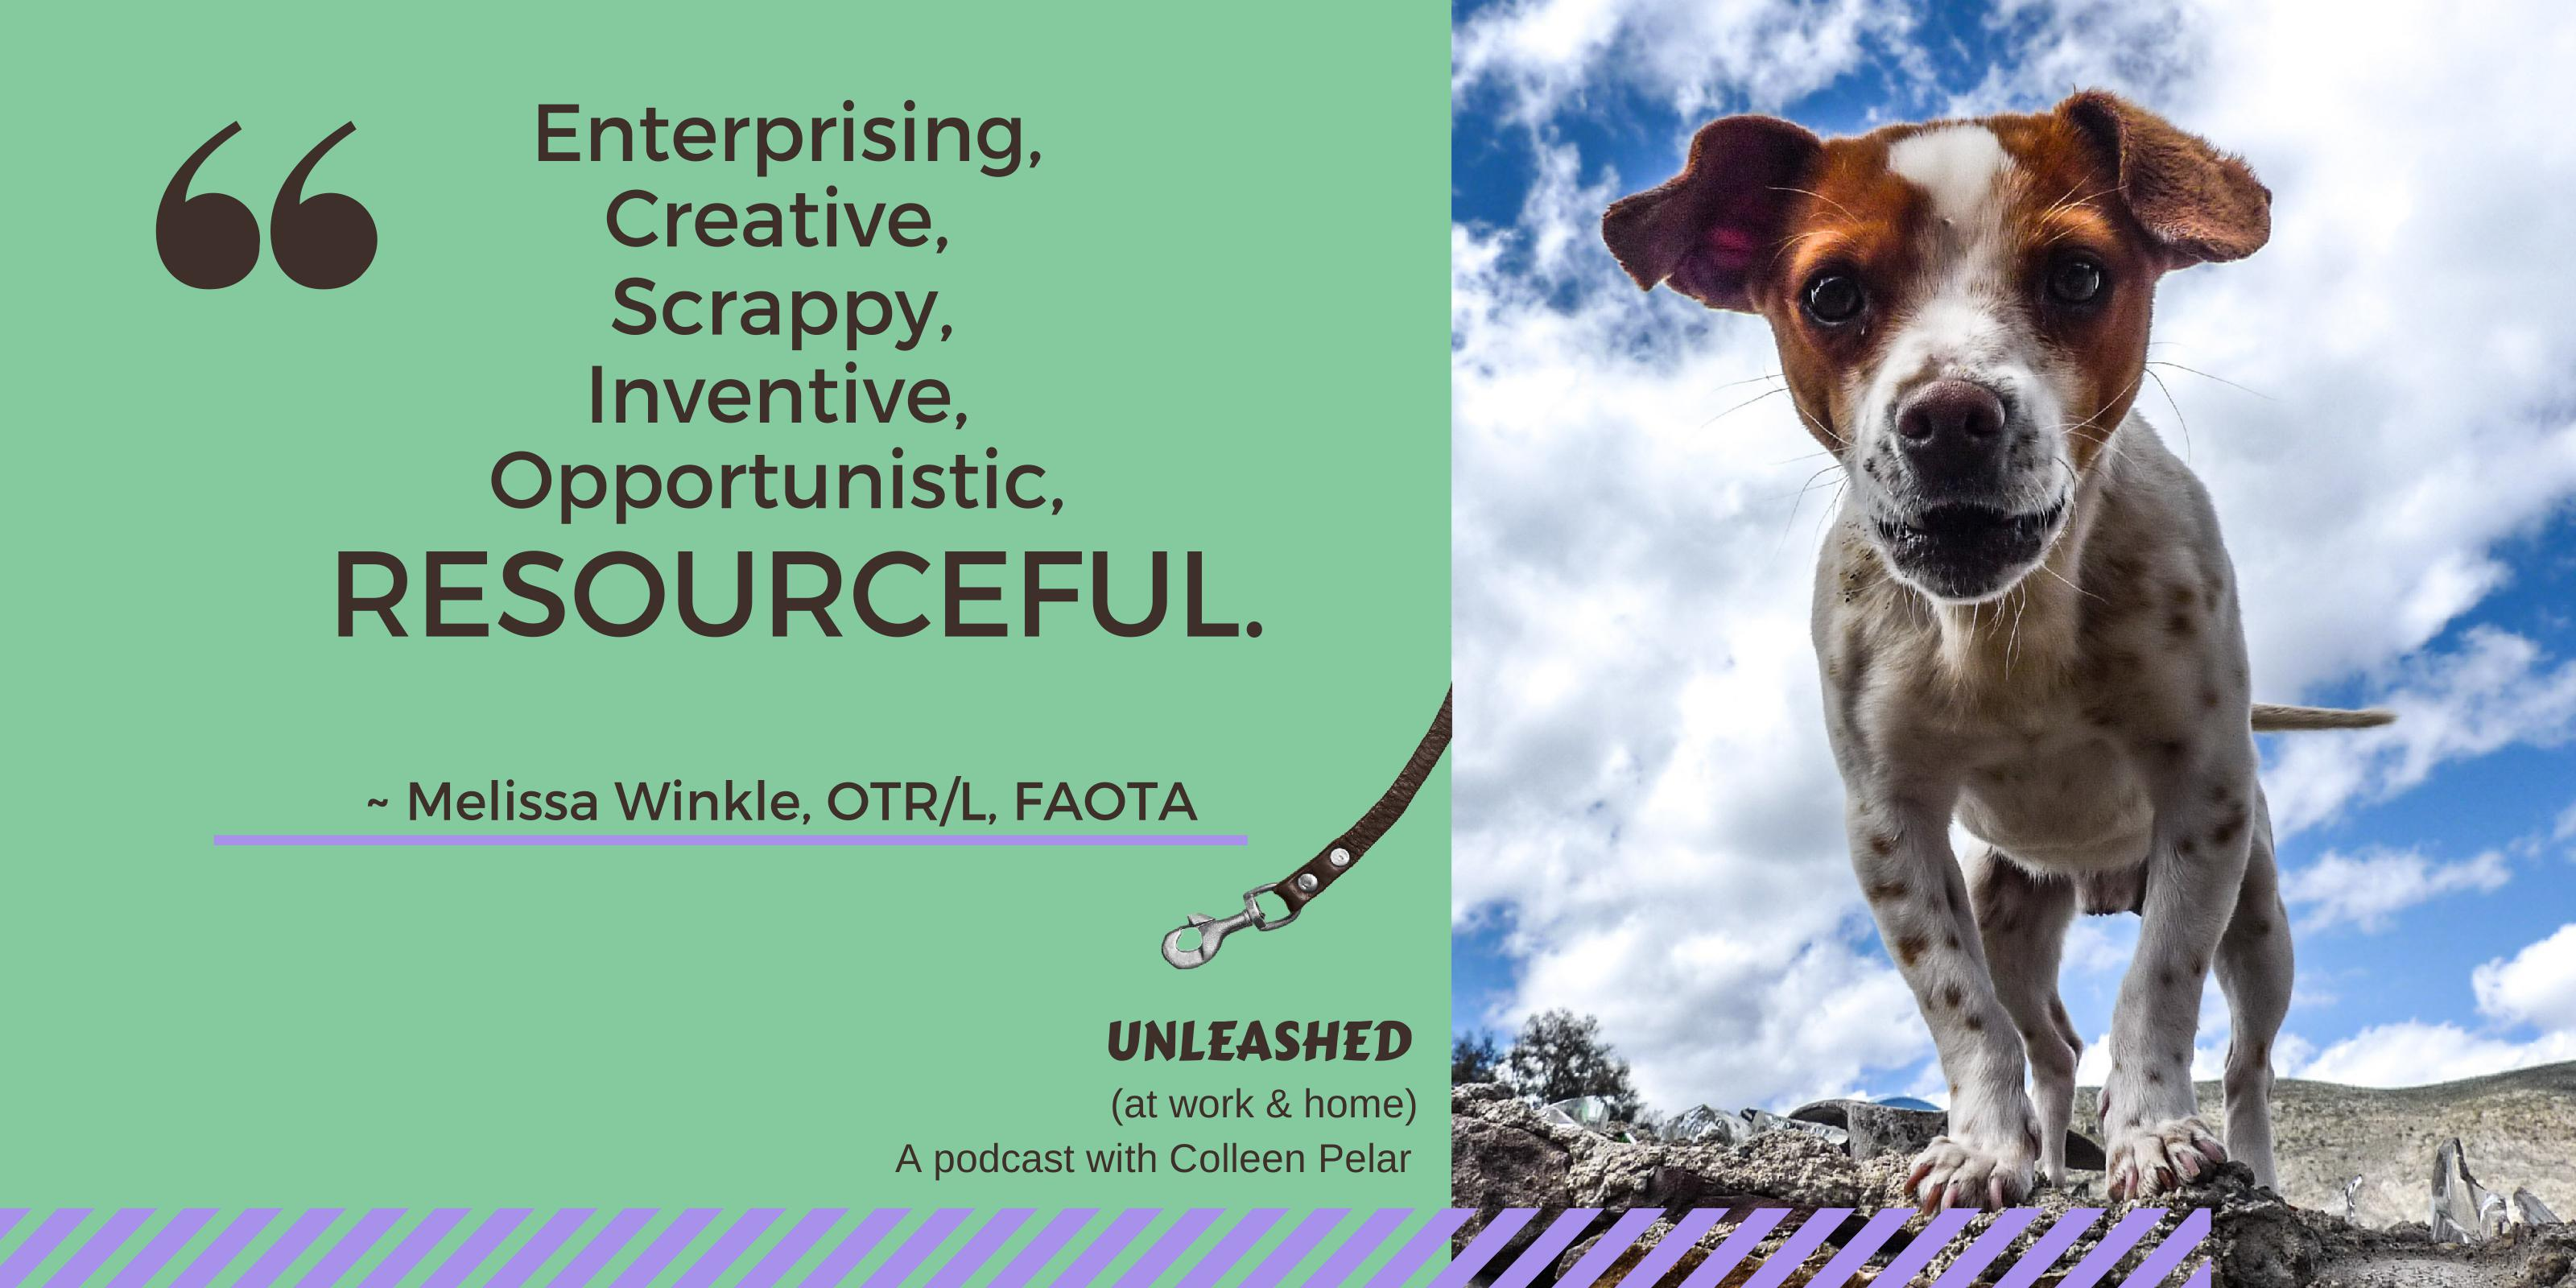 UNLEASHED (at work & home) podcast episode 9